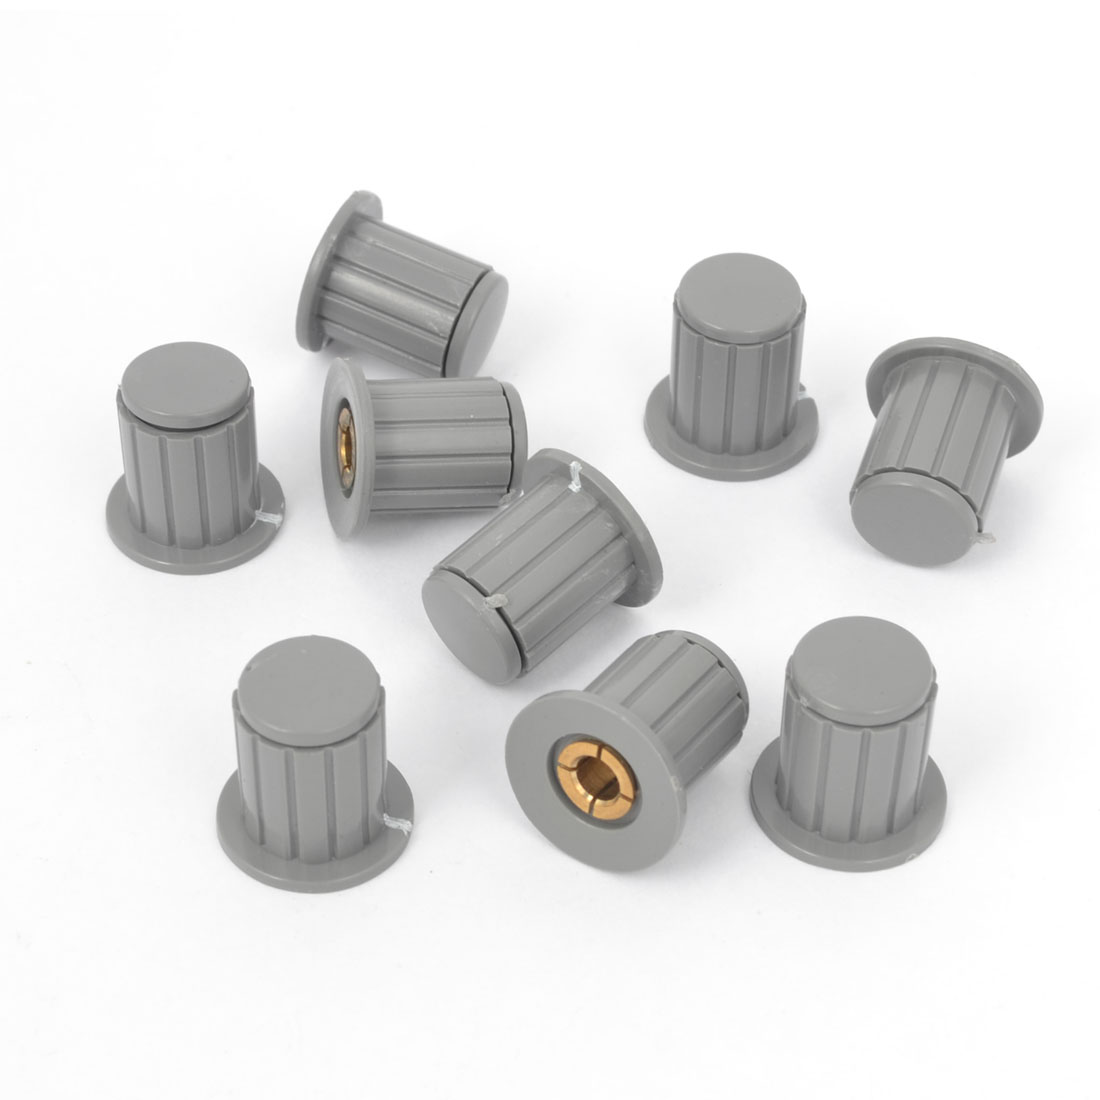 9 Pieces Replacement Audio Volume Control Potentiometer Knobs 4mm Dia